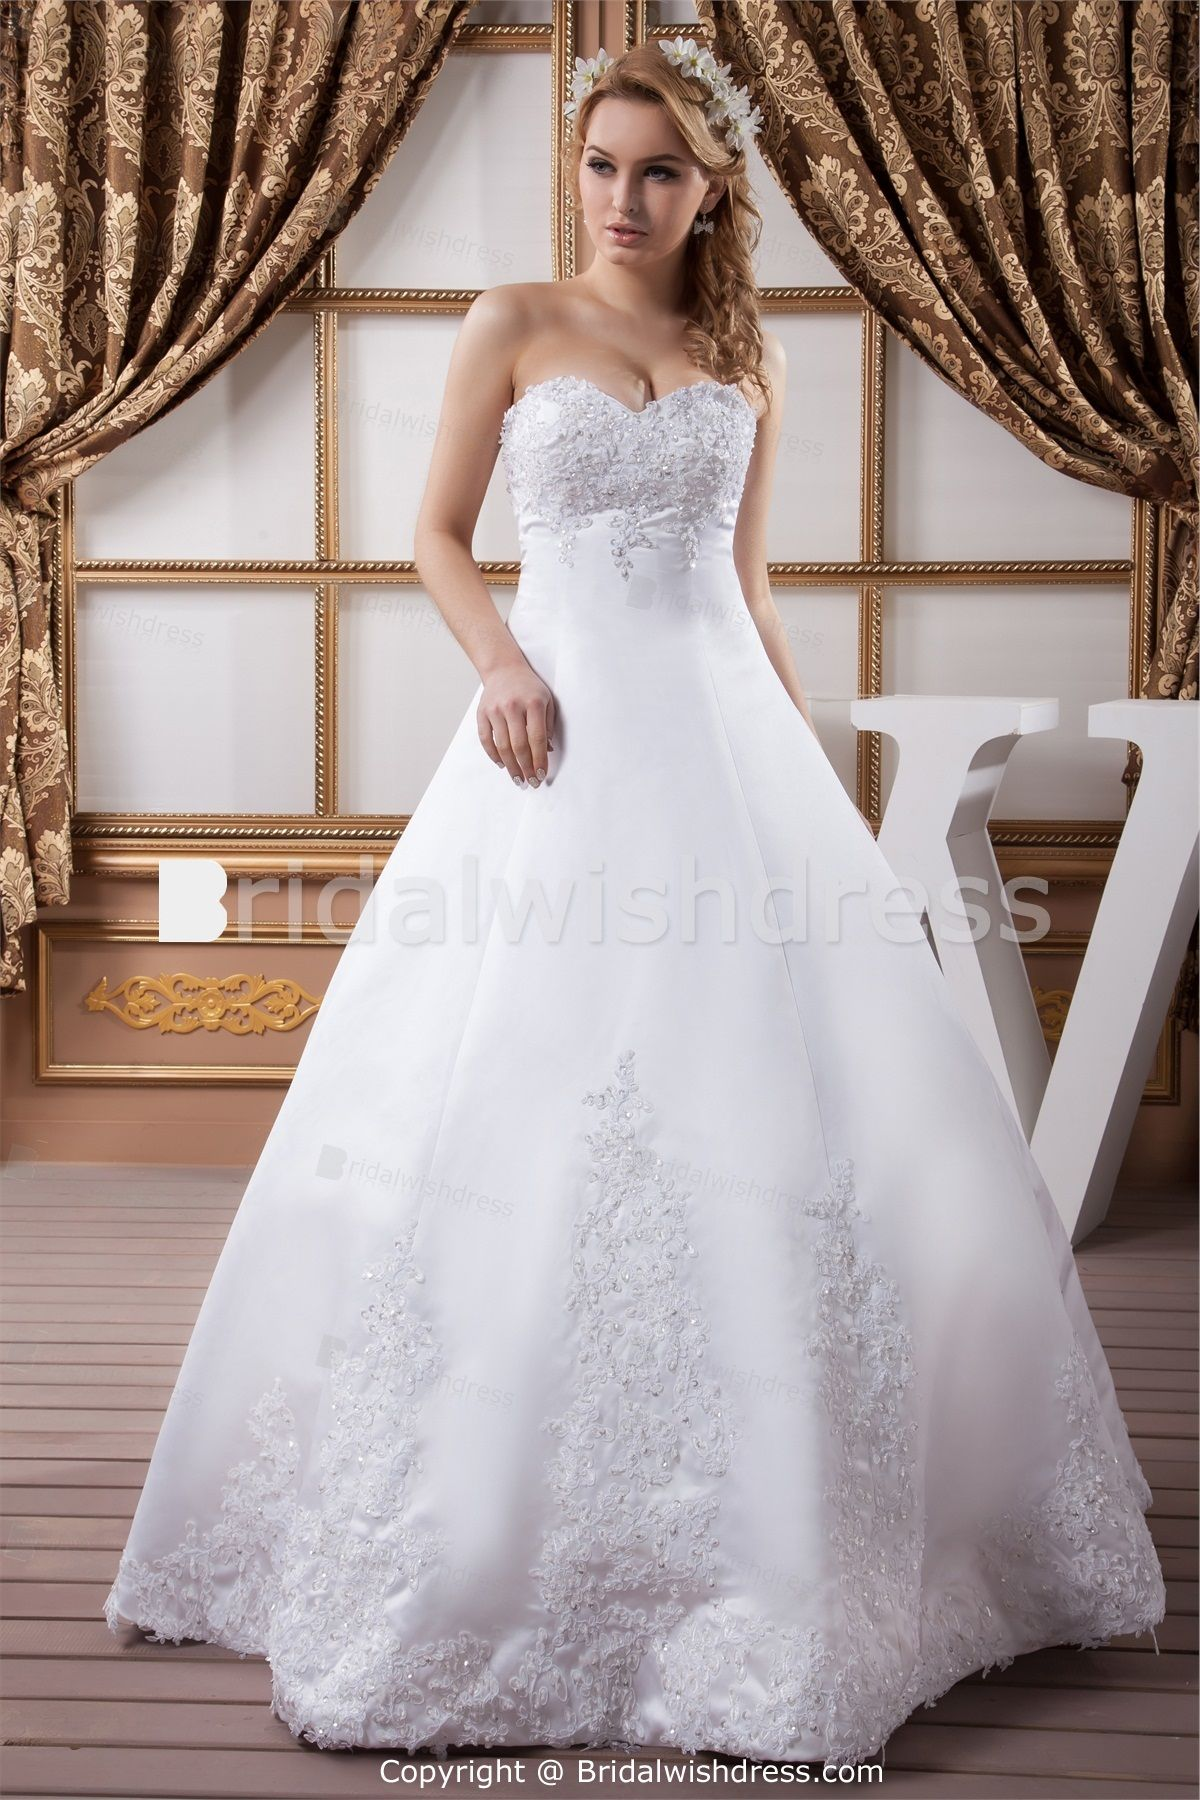 Best Wedding Dresse | Robes de Mariée. Weeding Dress | Pinterest ...